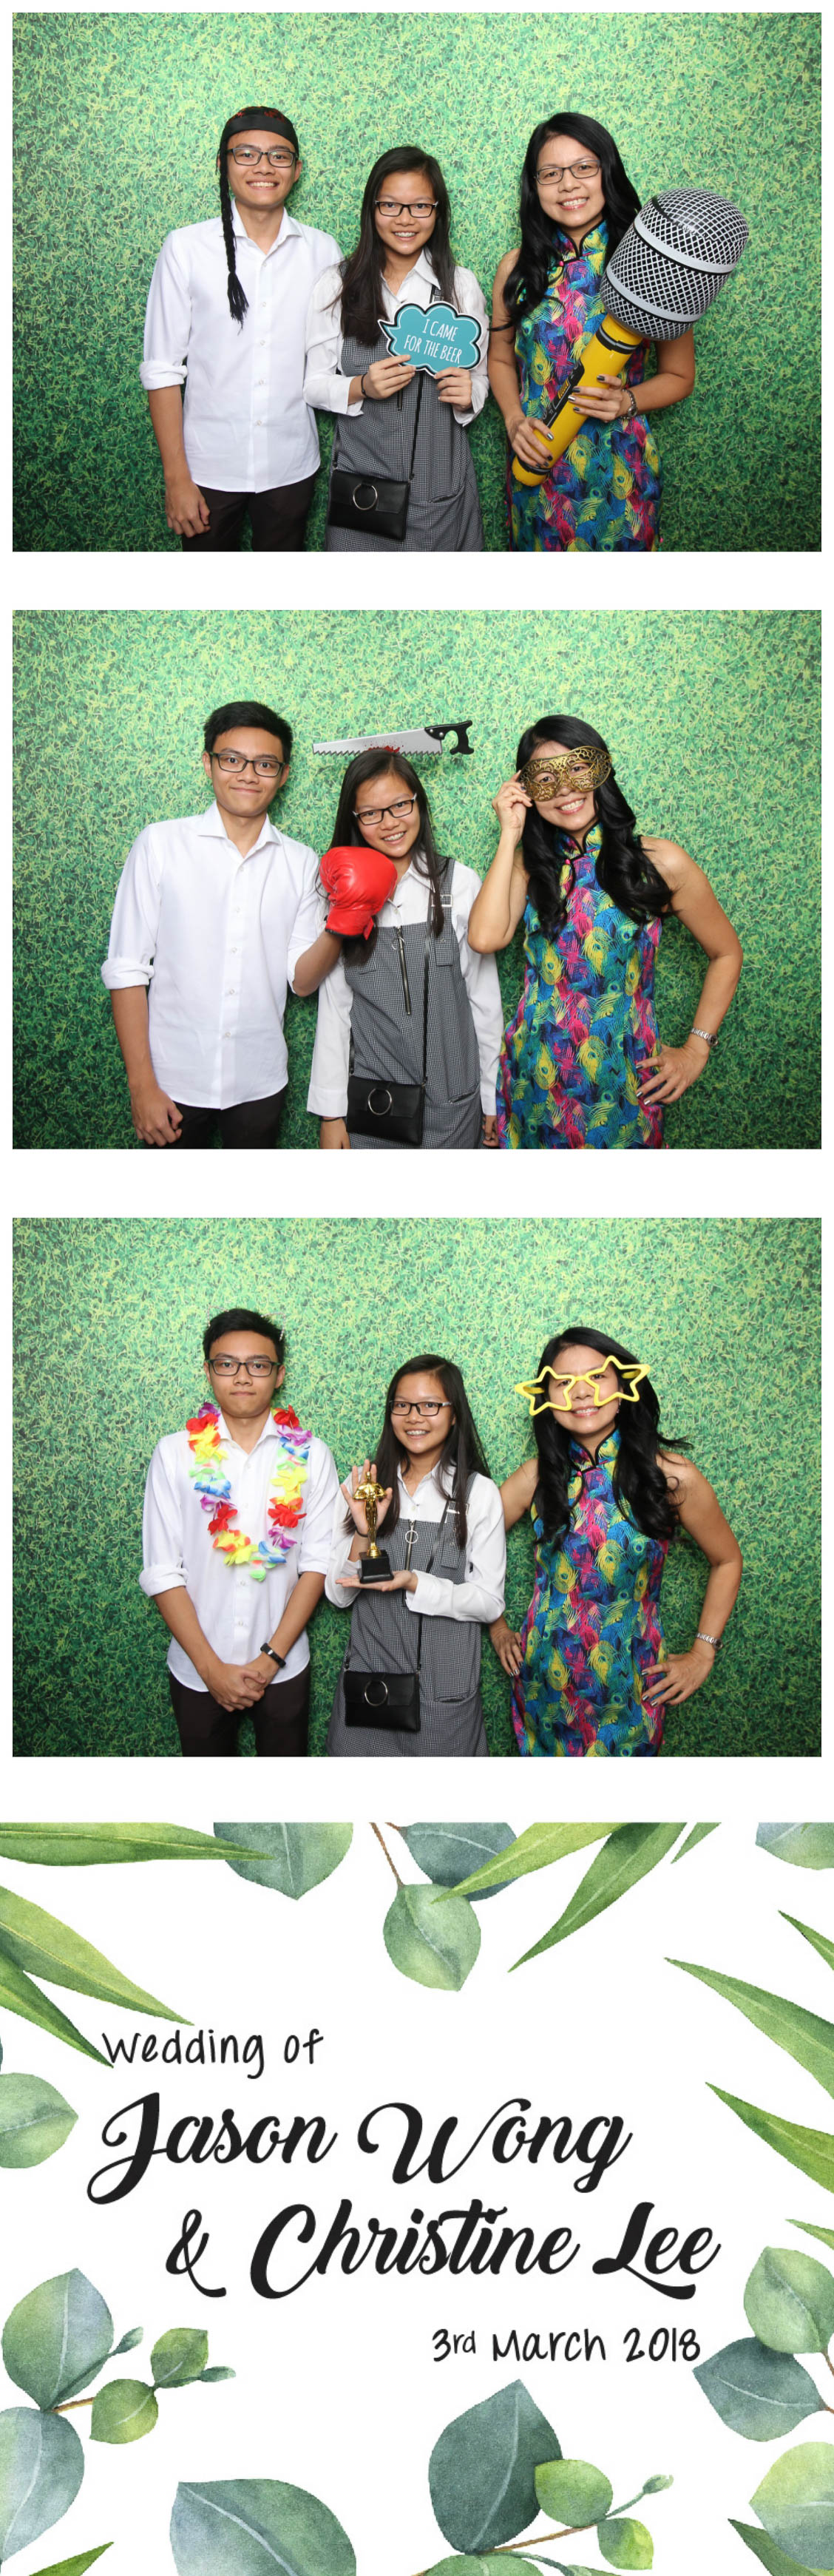 Photobooth 0302-3